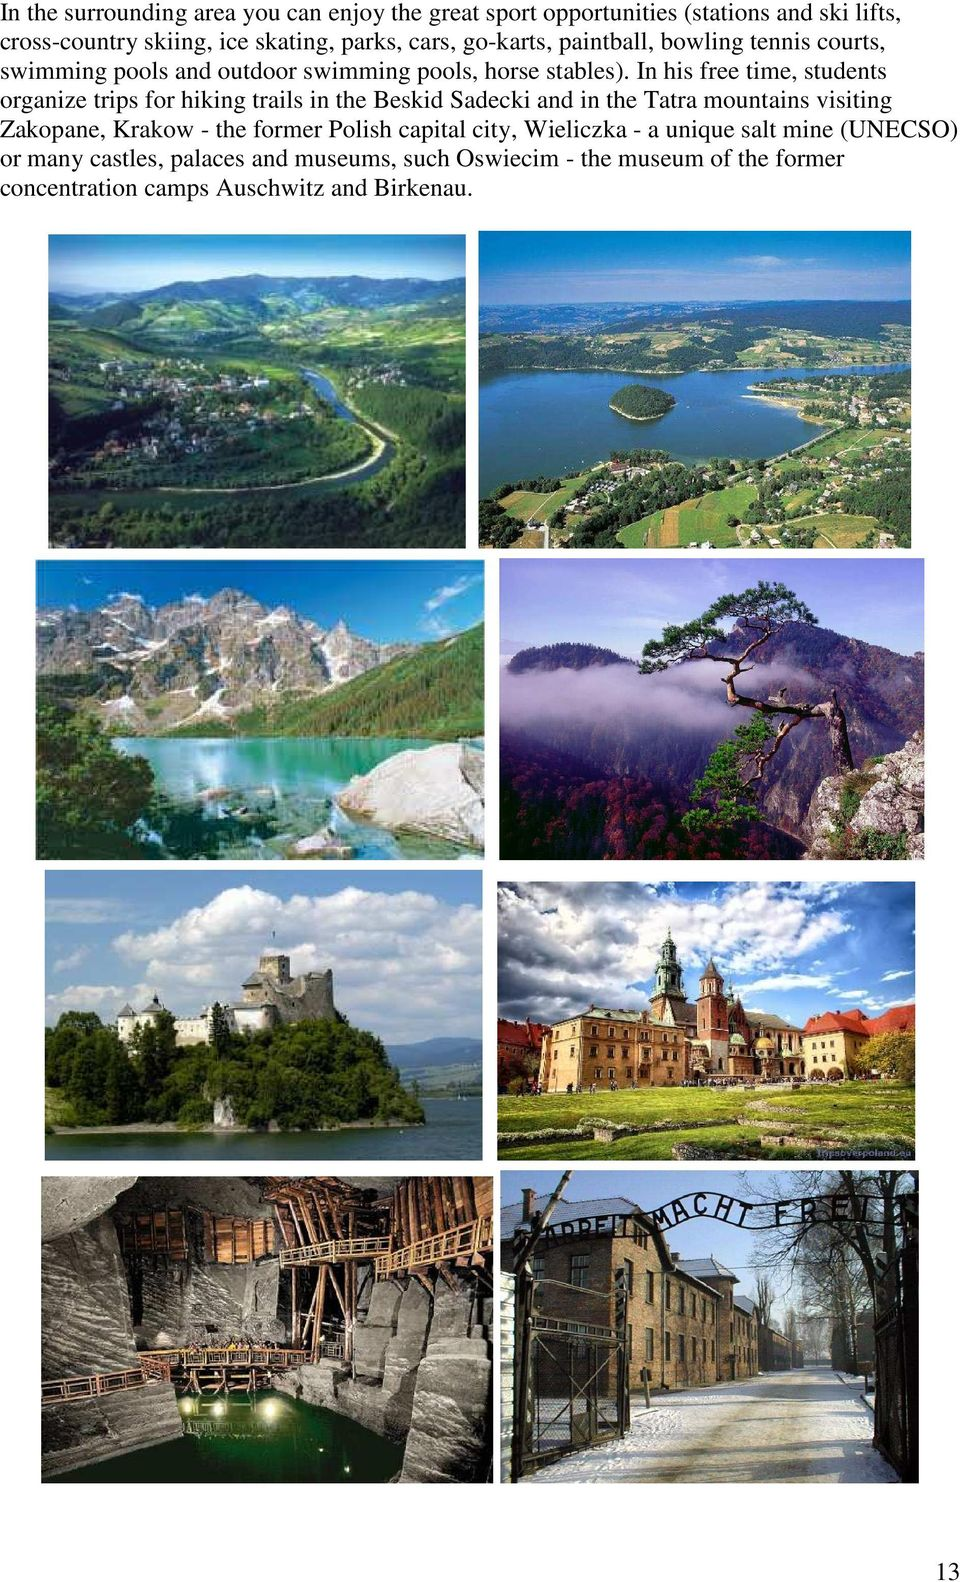 In his free time, students organize trips for hiking trails in the Beskid Sadecki and in the Tatra mountains visiting Zakopane, Krakow - the